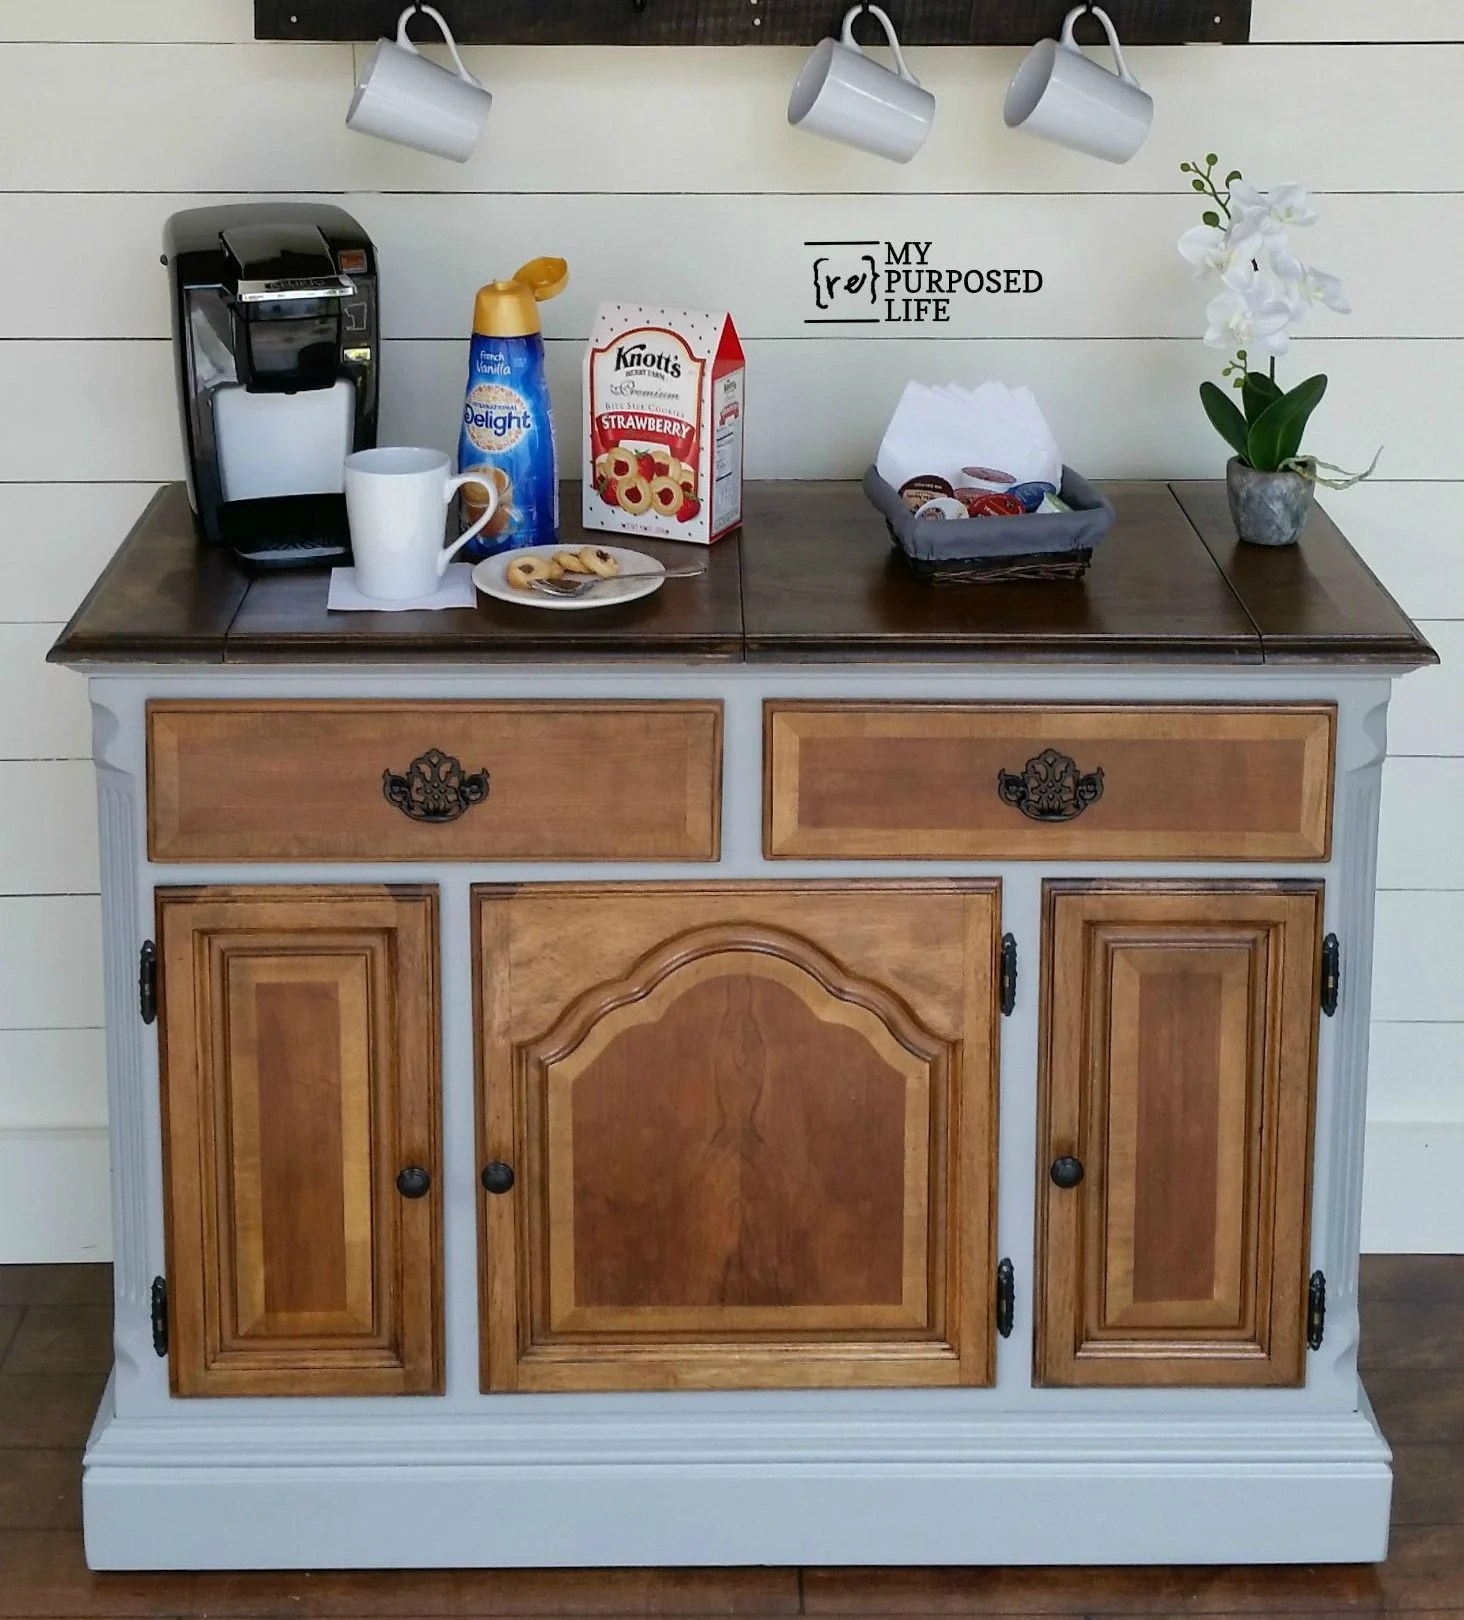 Astounding Coffee Station Repurposed Buffet My Repurposed Life Frankydiablos Diy Chair Ideas Frankydiabloscom